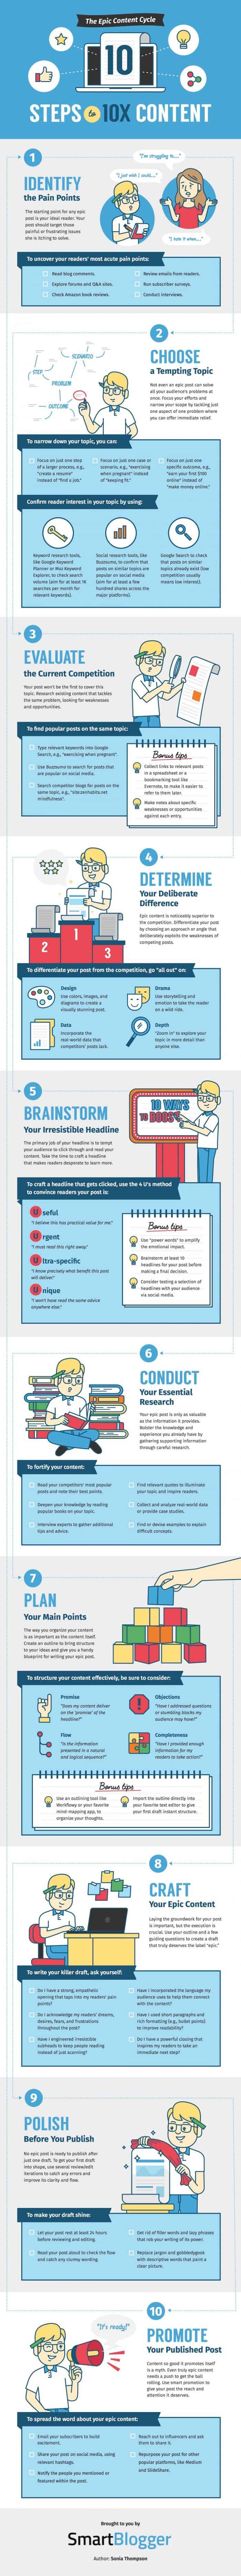 make epic content infographic